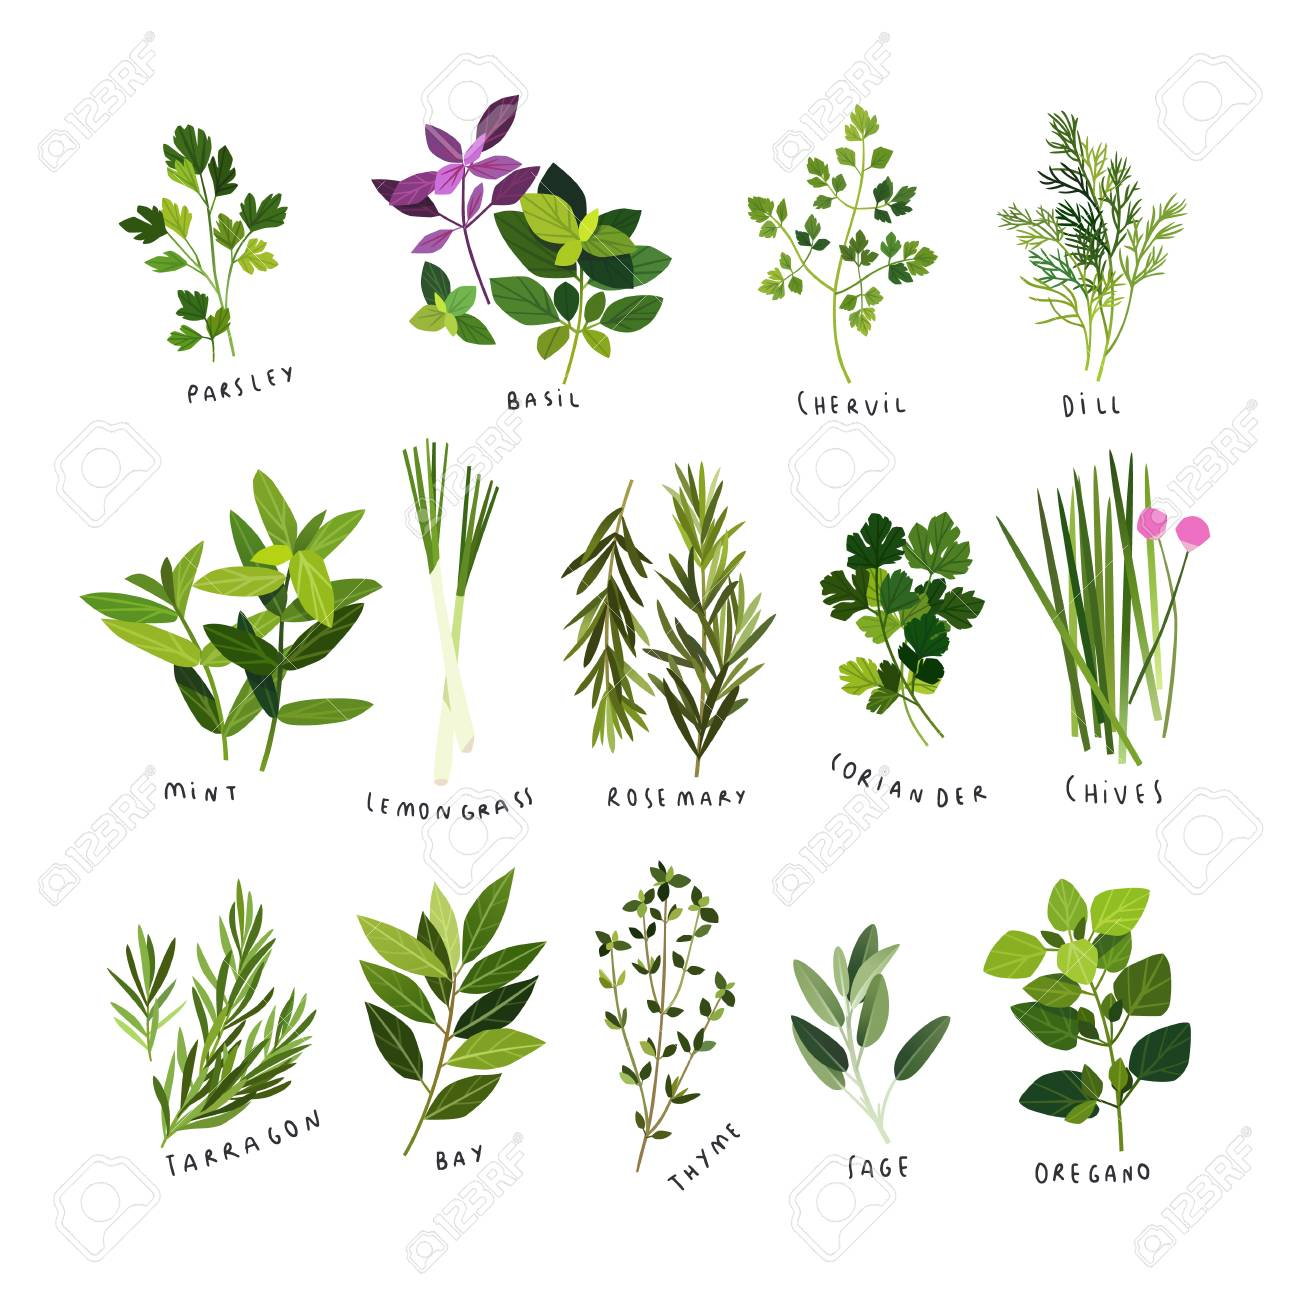 Clip art illustrations of herbs and spices such as parsley, basil,...